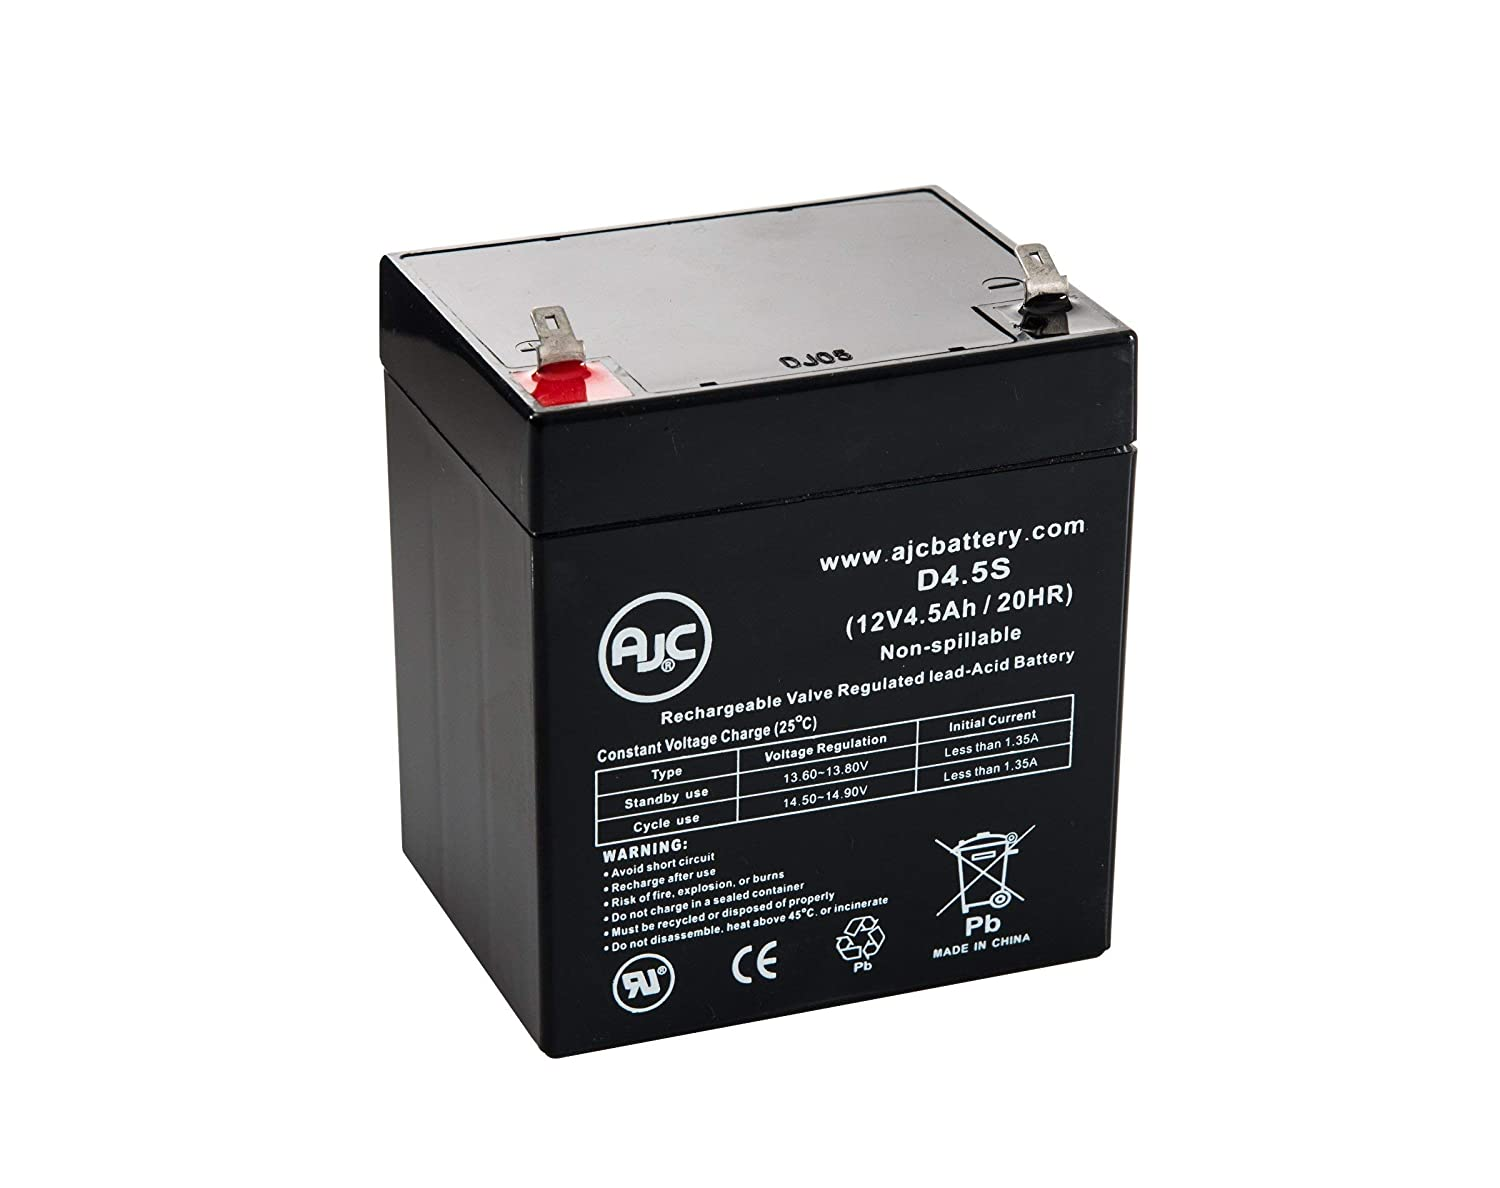 Leoch DJW12-5.4 T2, DJW 12-5.4 T2 12V 4.5Ah UPS Battery - This is an AJC Brand Replacement AJC Battery